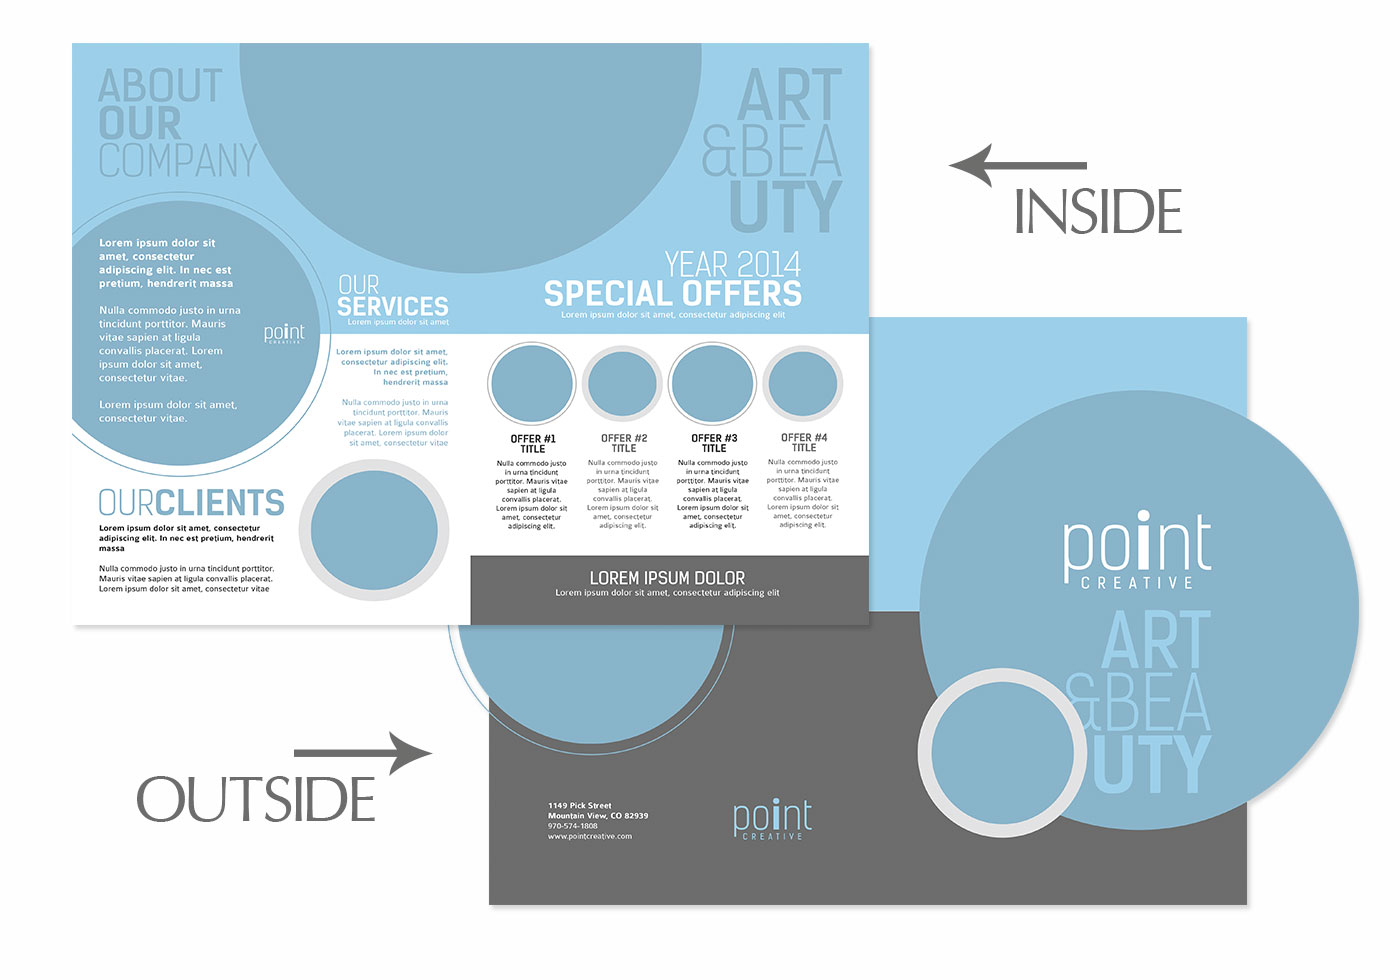 pamphlet photoshop template - bifold brochure psd template pack free photoshop brushes